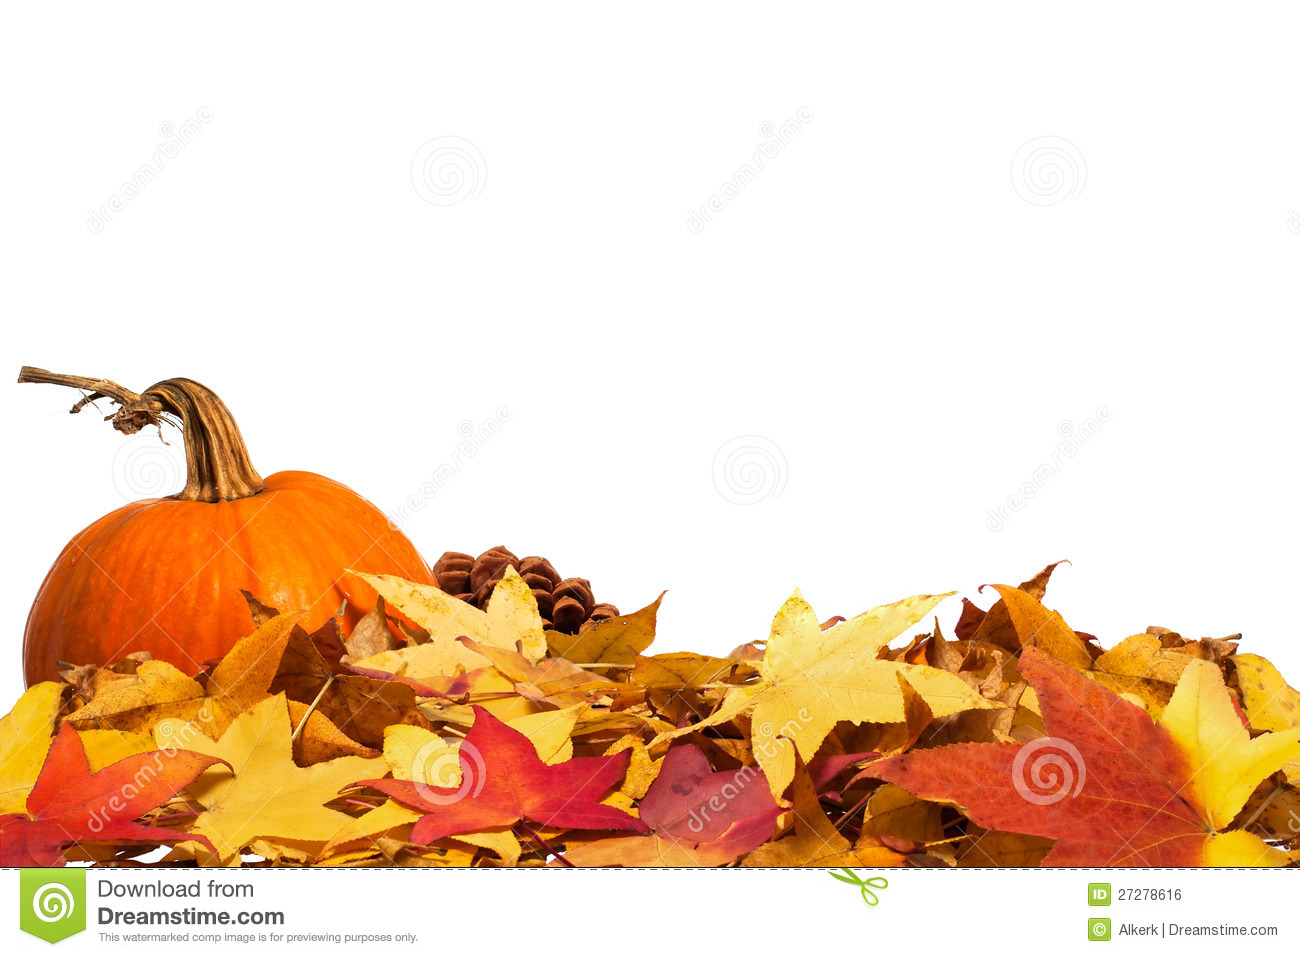 Autumn border with pumpkin stock photo. Image of pumpkin ...